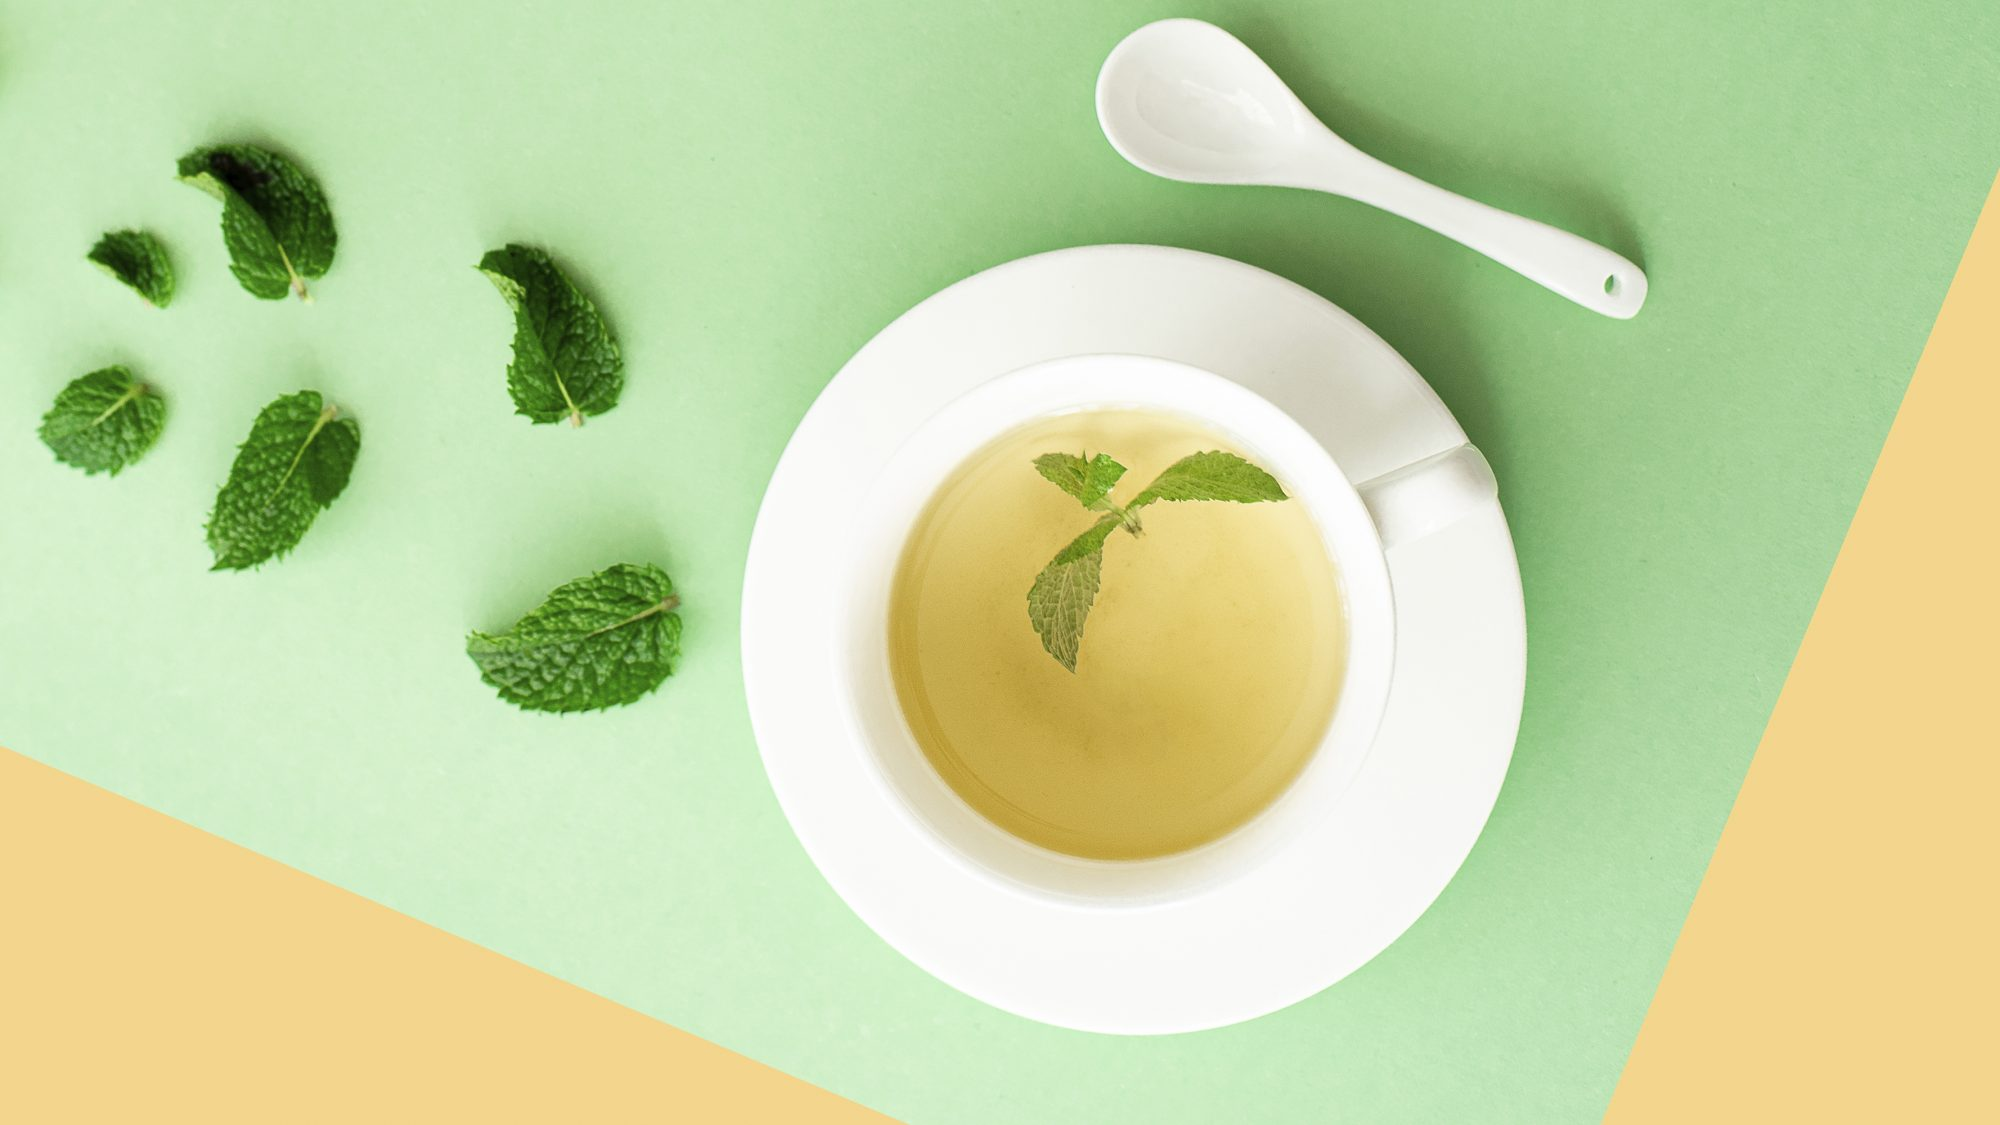 herbal mint tea in a white cup on a light green background: nausea treatment